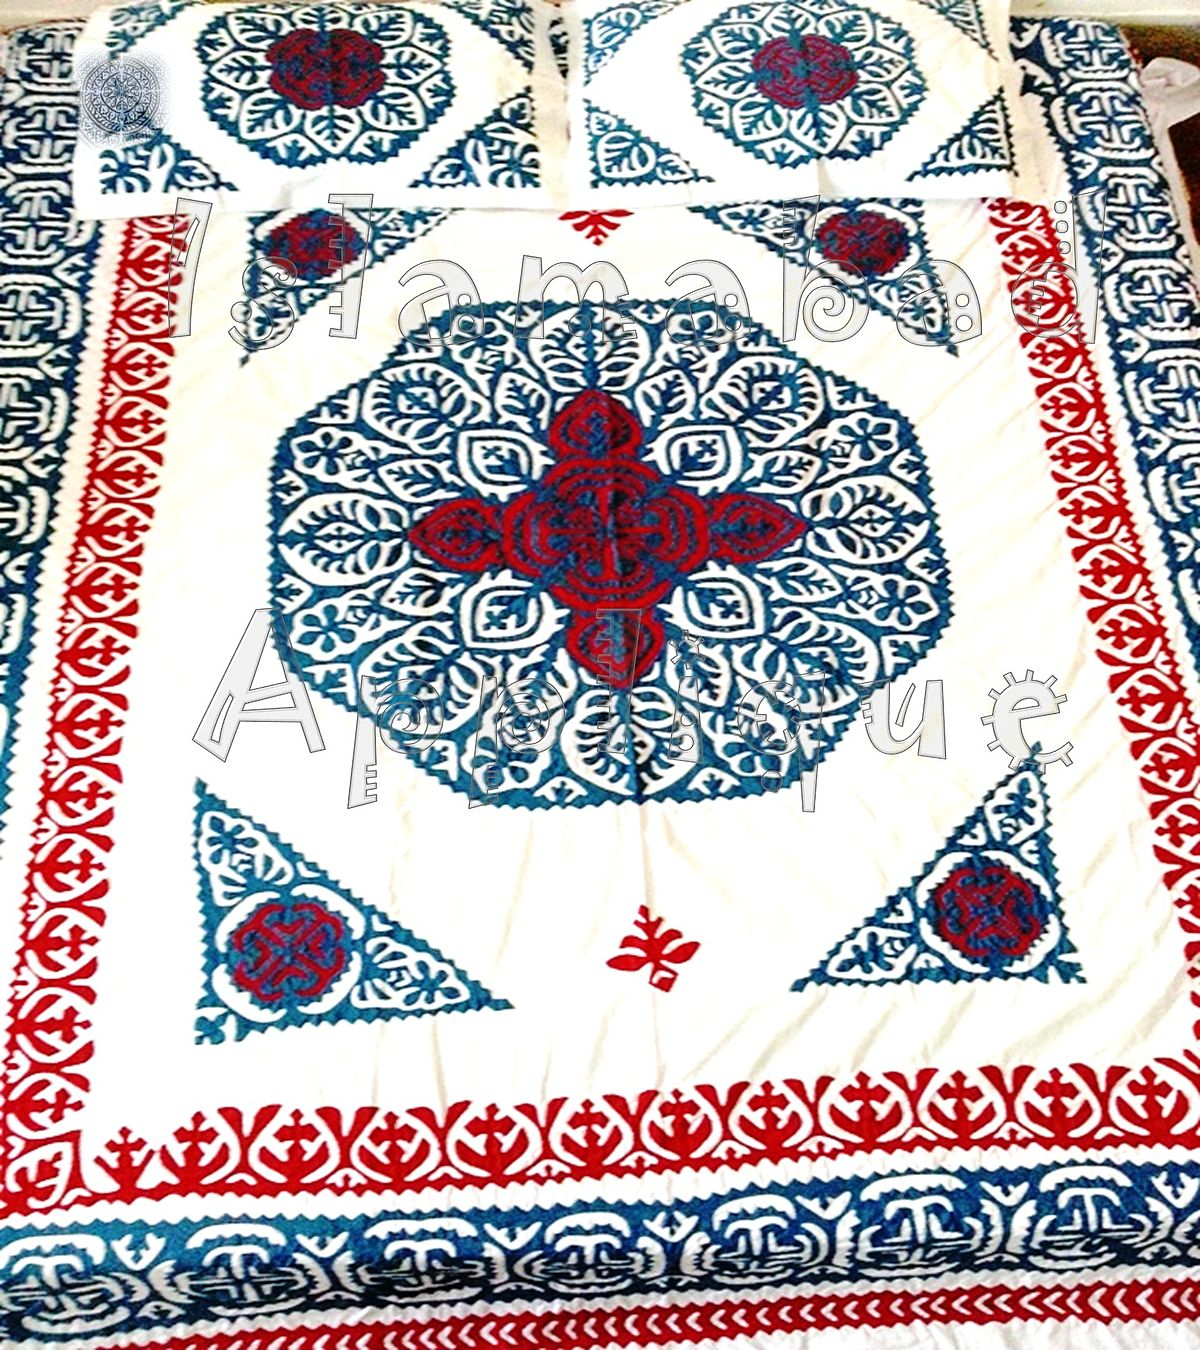 Quilt Now Ralli Quilt - Wikipedia